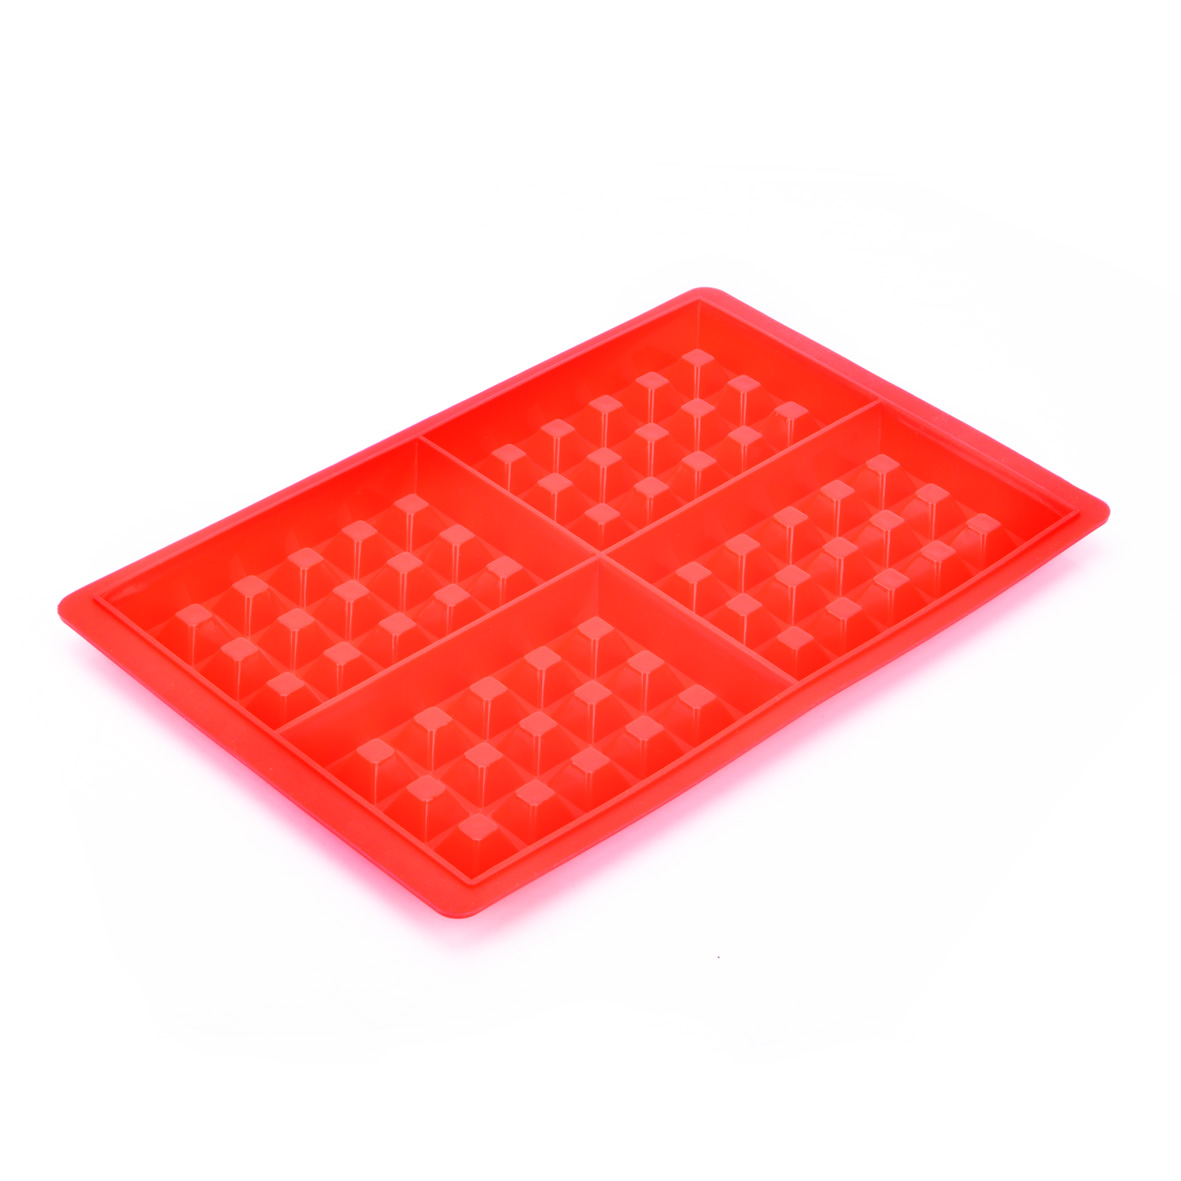 Silicone waffle biscuit mold muffin mold cake mold bakeware waffles waffle mold mold silicone mold